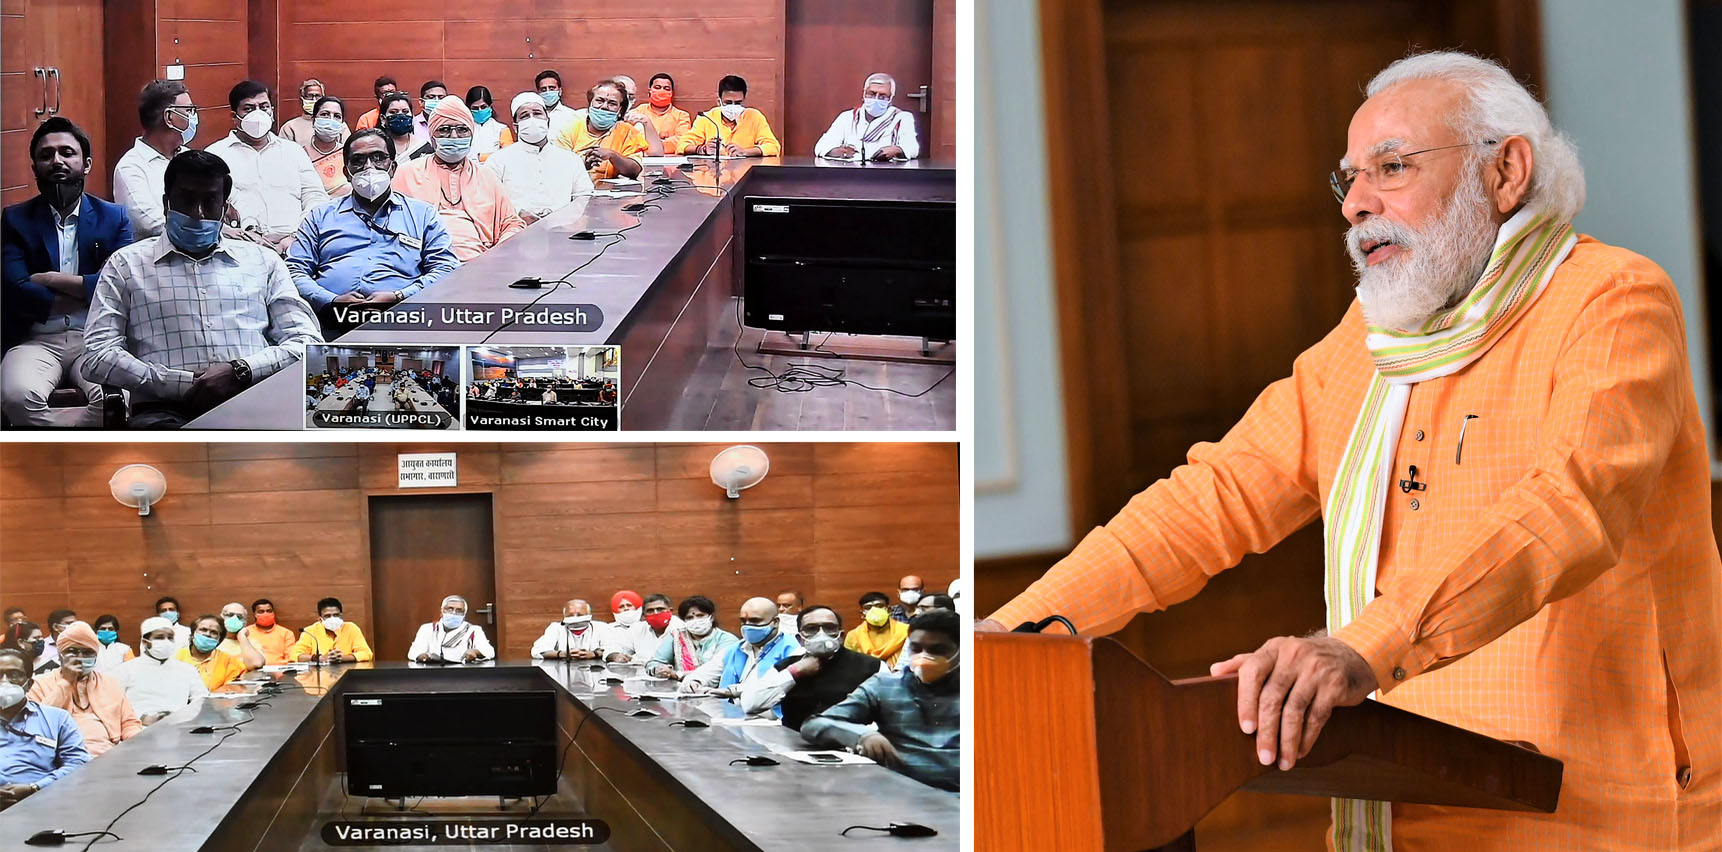 The Prime Minister, Shri Narendra Modi interacts with representatives from Varanasi based NGOs via video conference, in New Delhi on July 09, 2020.